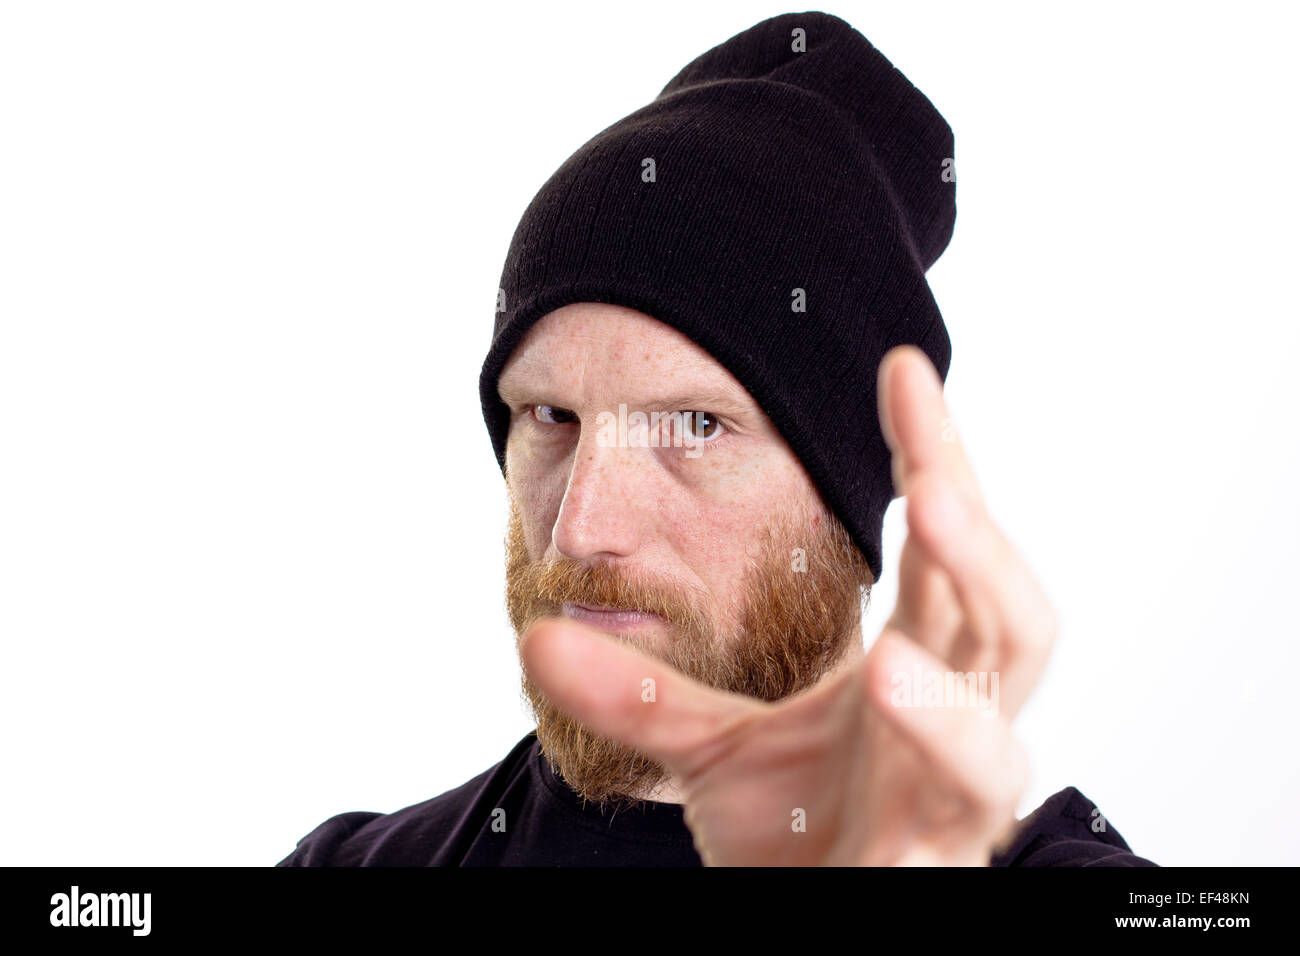 man grabbing  isolated on white background - Stock Image